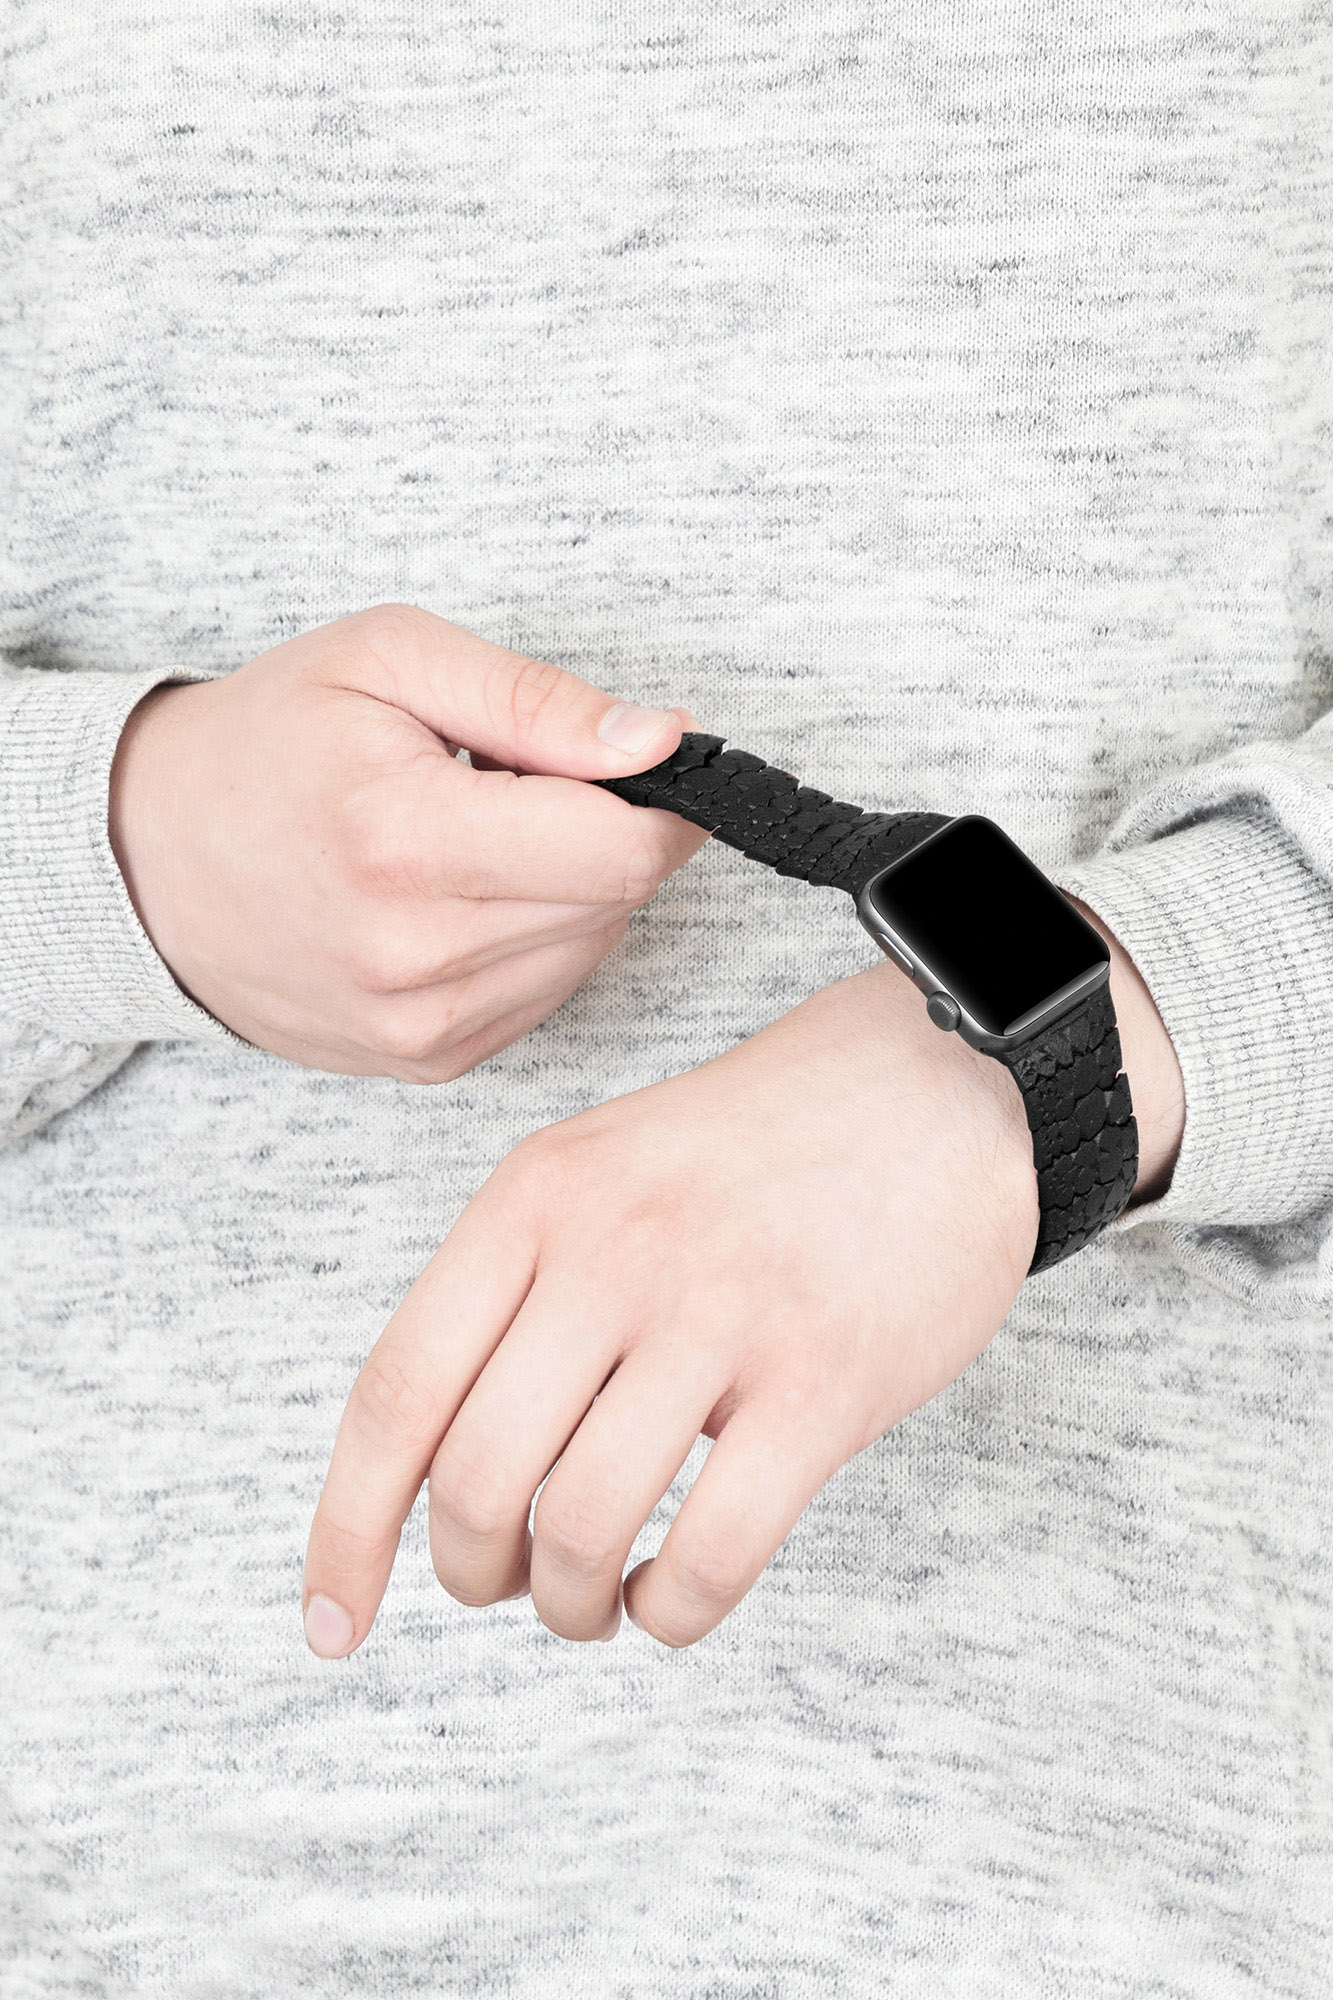 Flexibility | Freshfiber Apple Watch Bands, Design by Matthijs Kok for Freshfiber